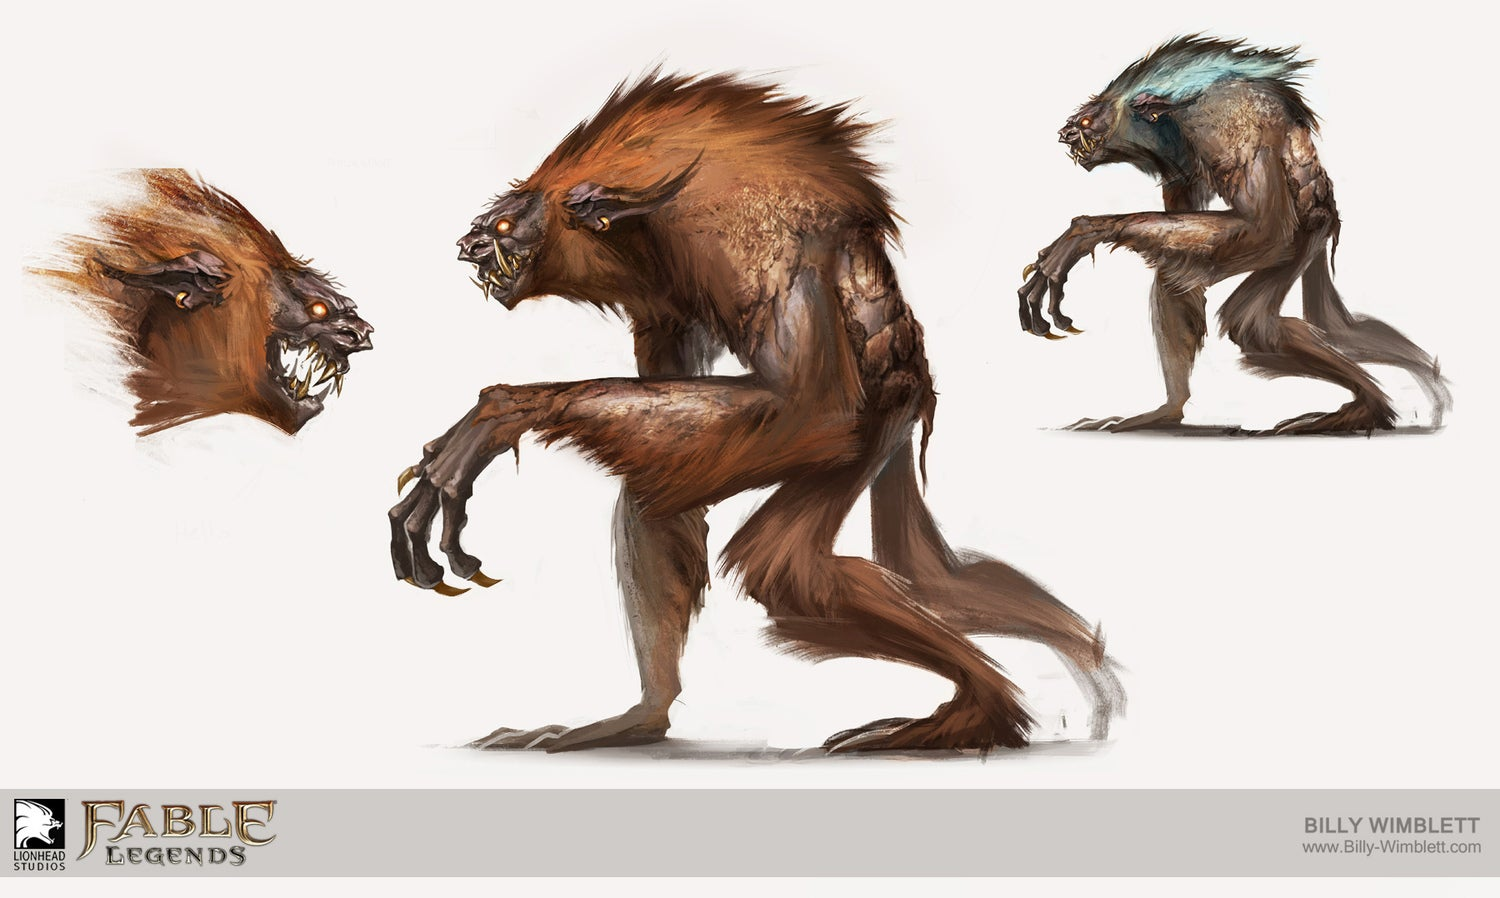 Some Art From The Now-Canceled Fable: Legends